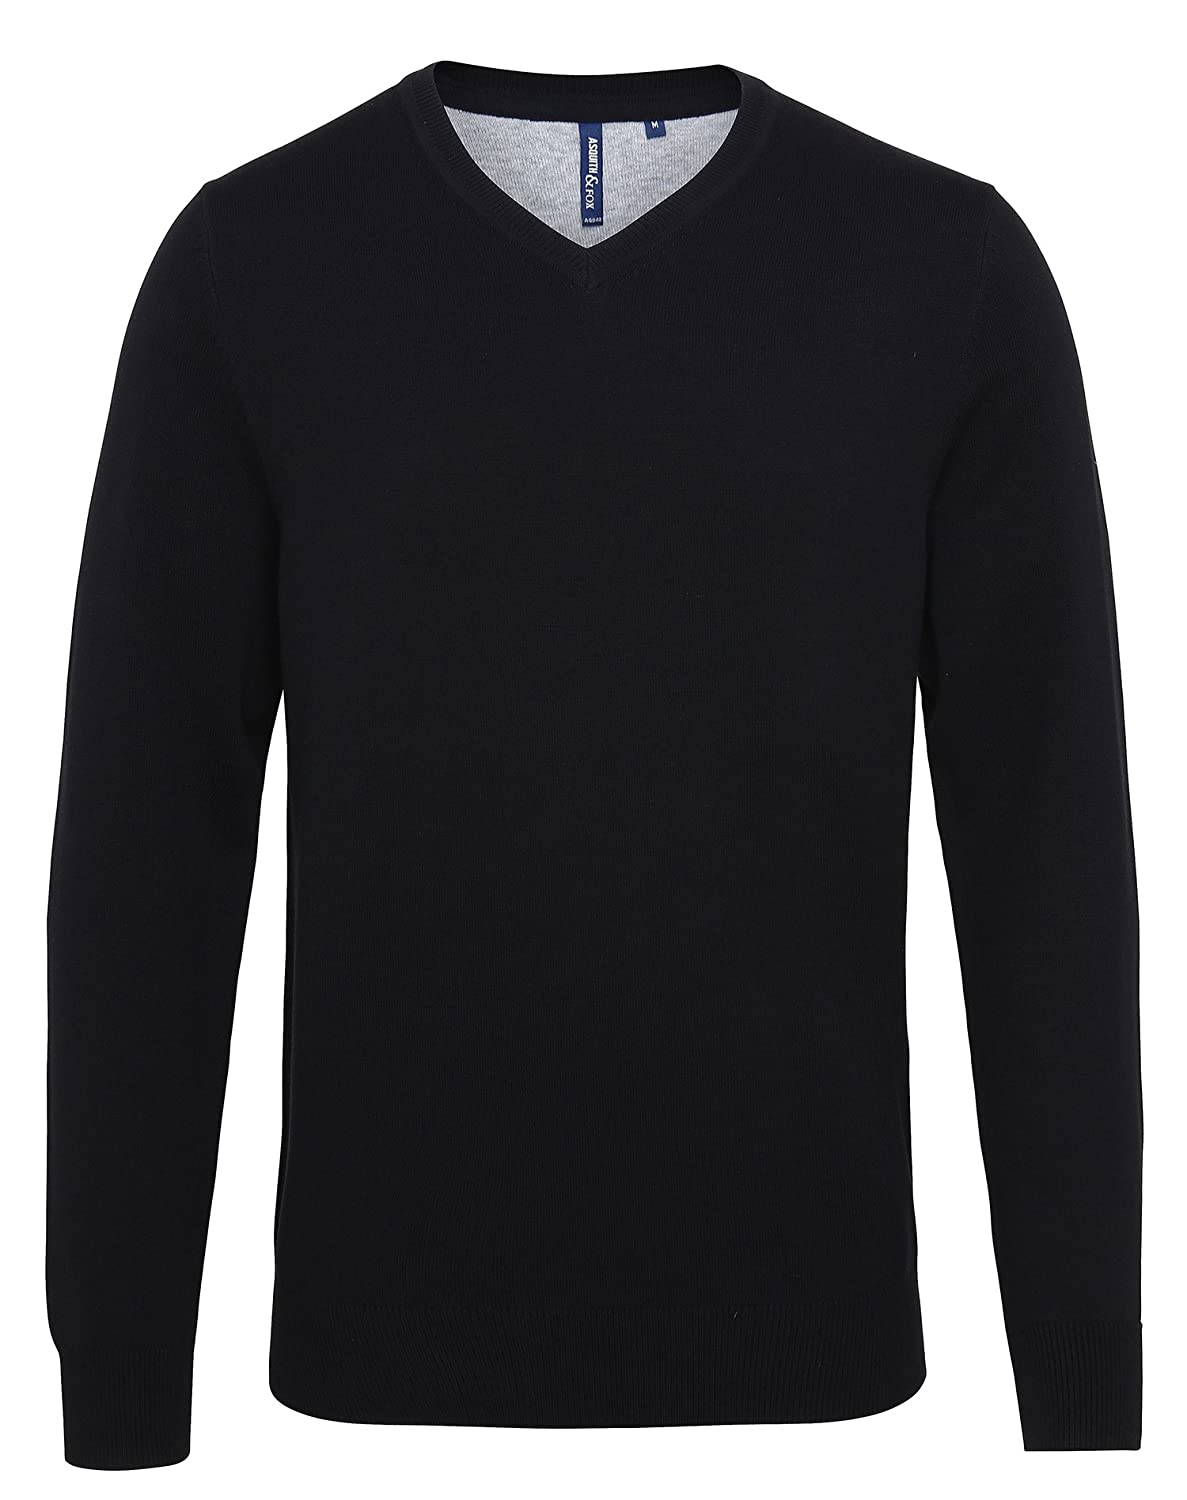 Asquith & Fox Mens Cotton Blend V Neck Sweater - 9 Colours - Black Heather - S